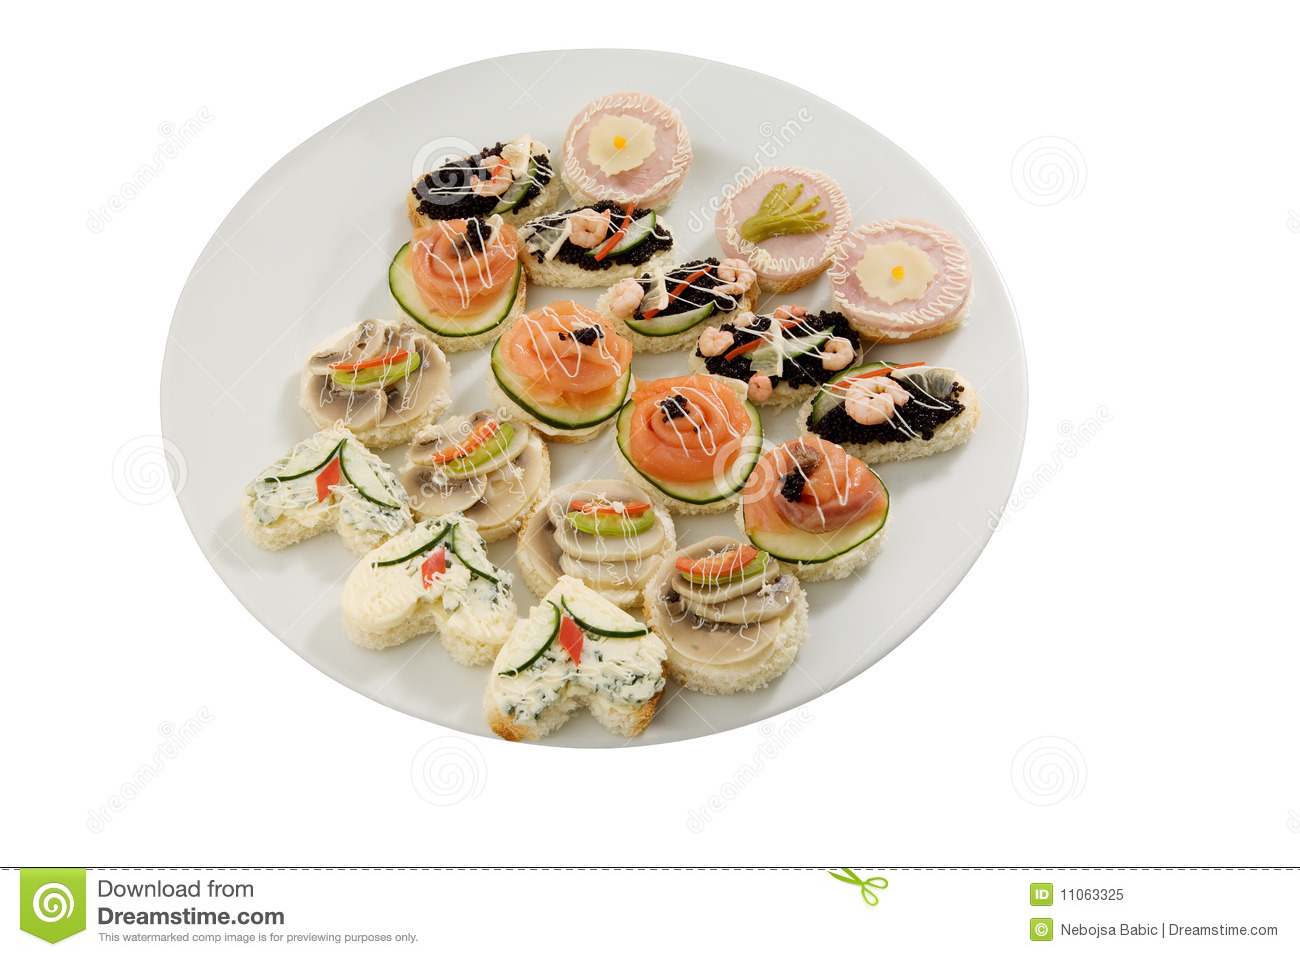 Canape selection royalty free stock photo image 11063325 for Canape selection